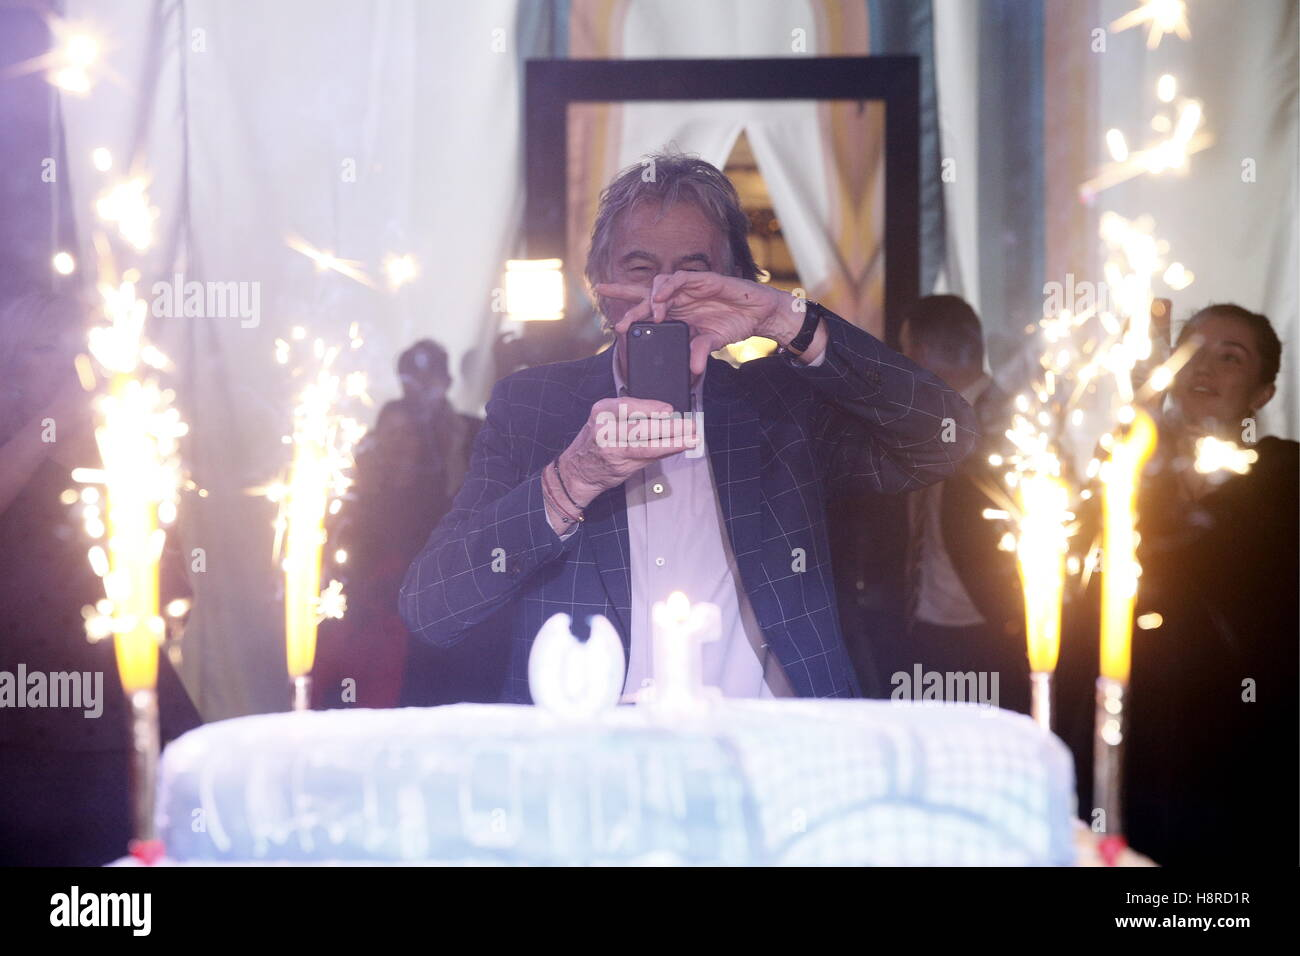 Moscow, Russia. 16th Nov, 2016. British fashion designer Paul Smith attends an event marking the 10th birthday of - Stock Image